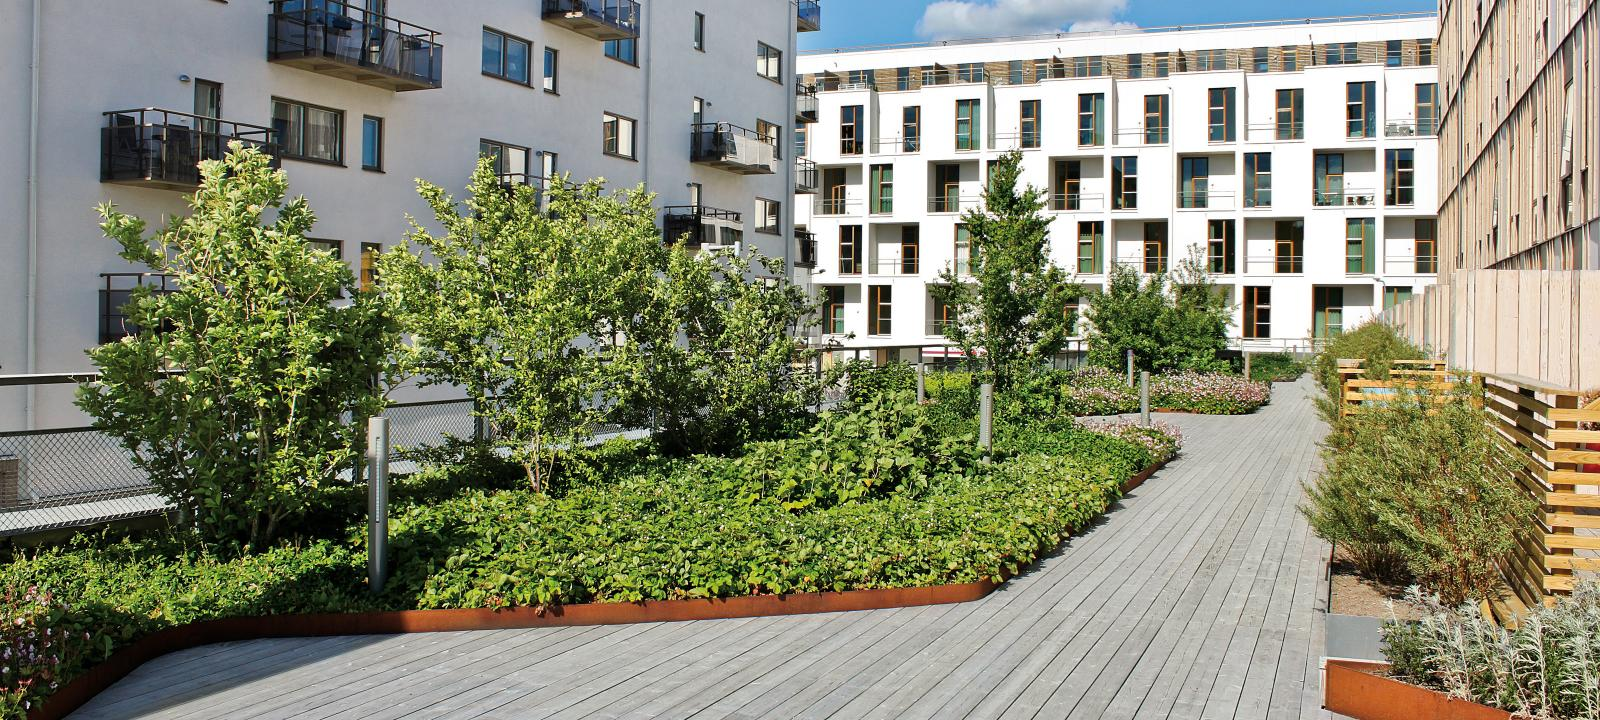 Roof garden with plant beds and timber decking